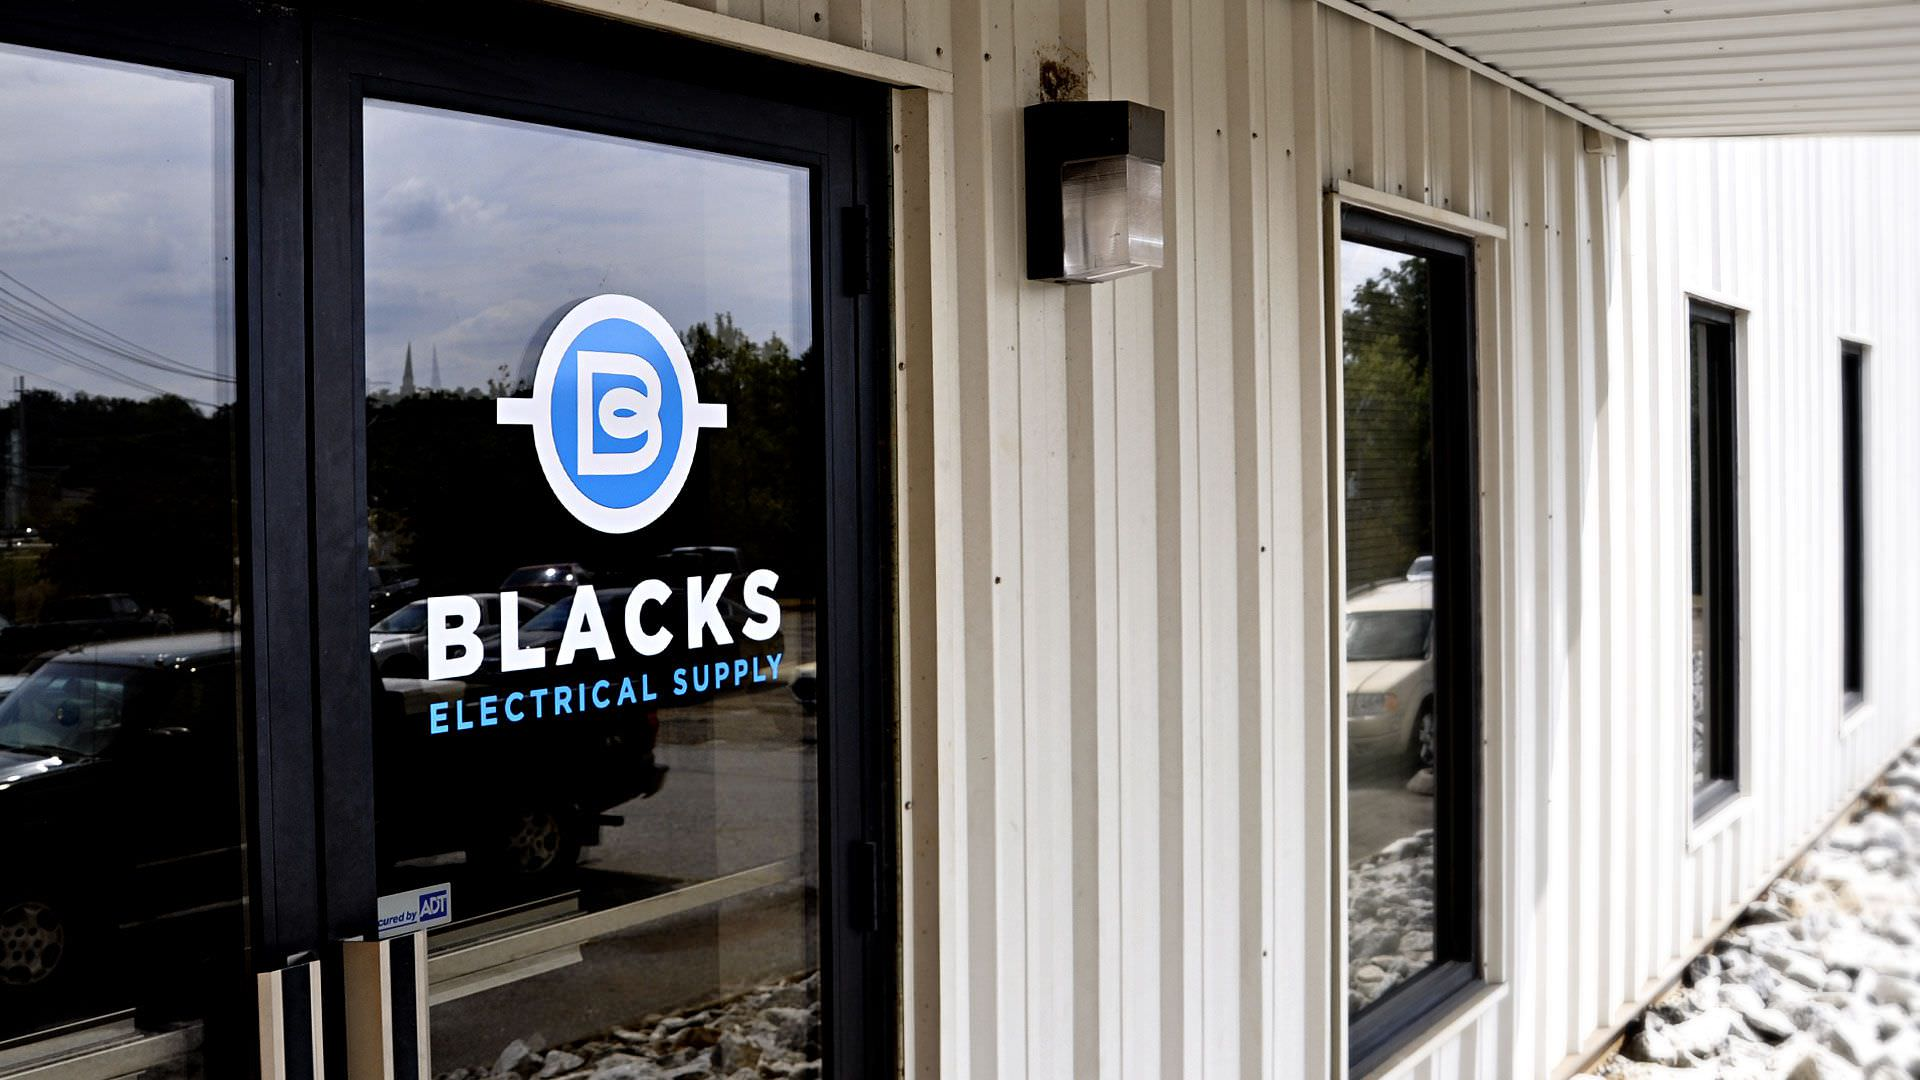 Branding Greenville based Blacks Electrical Supply - - Branding Greenville Headquarters Entrance